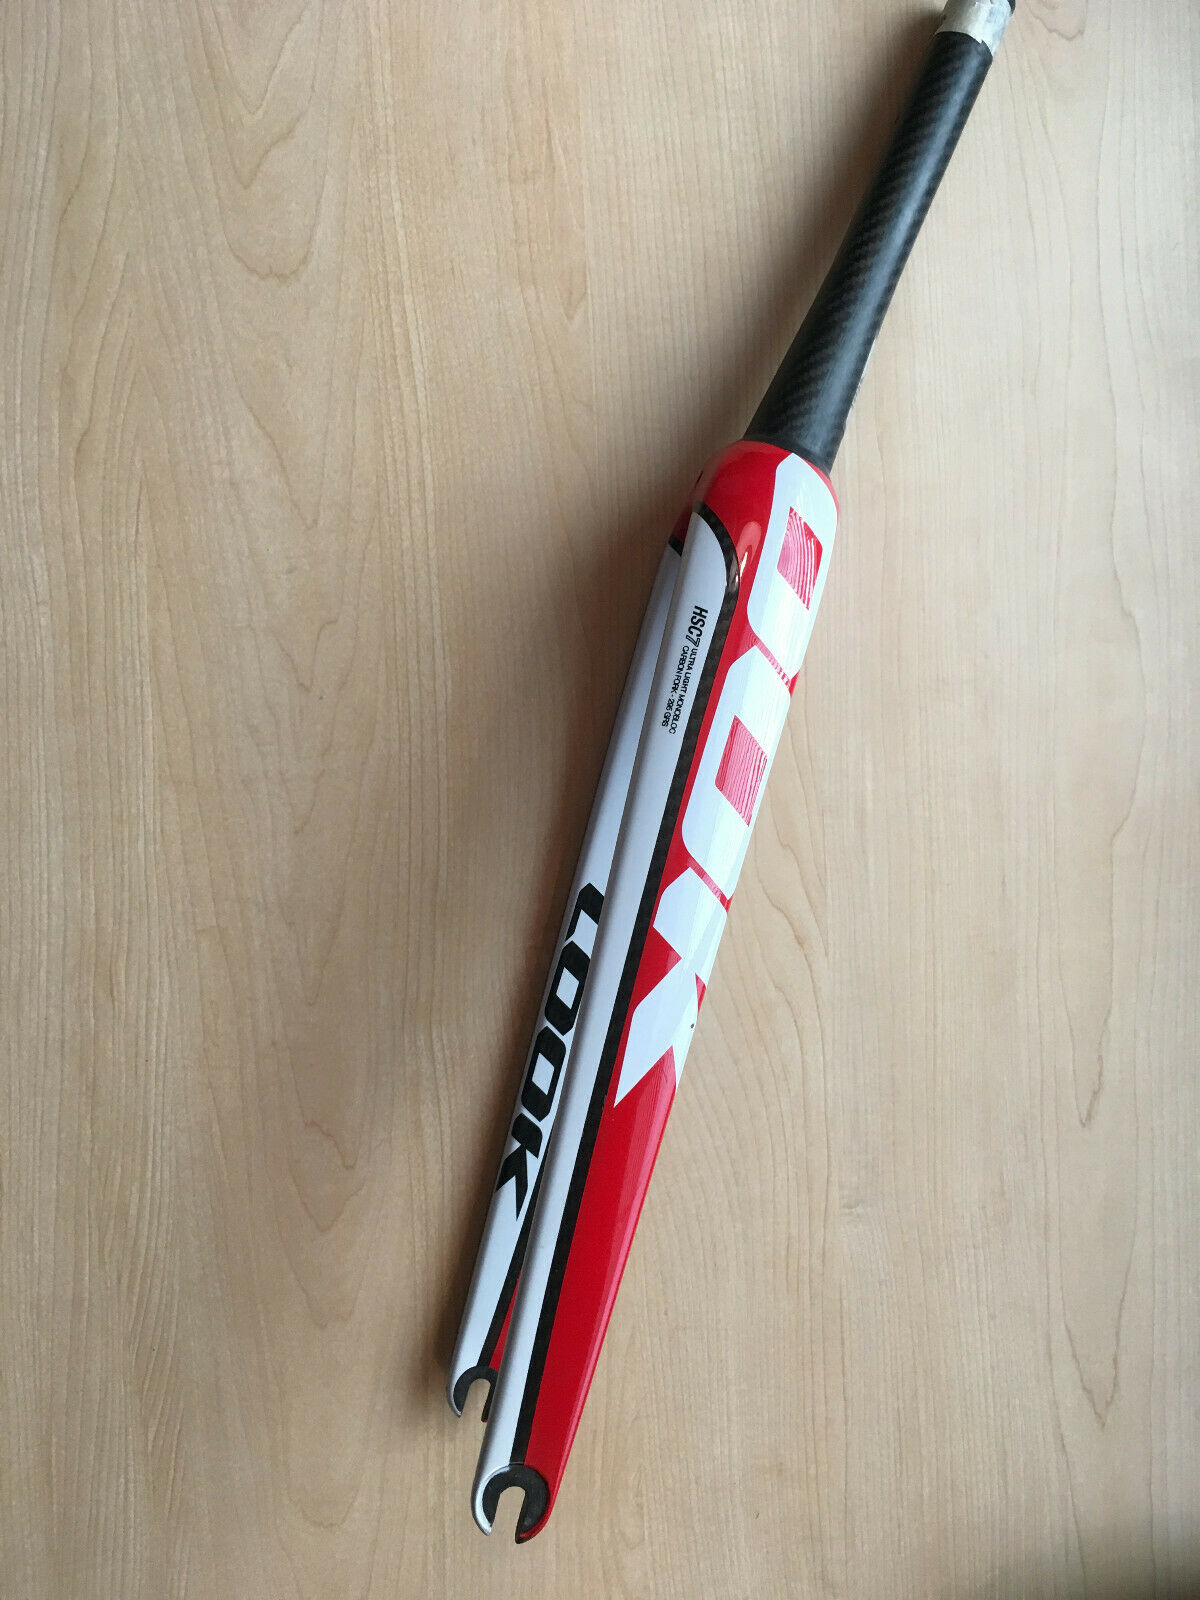 Look HSC7 Monobloc Carbon Fork, for  Look 695 (Large)  sell like hot cakes